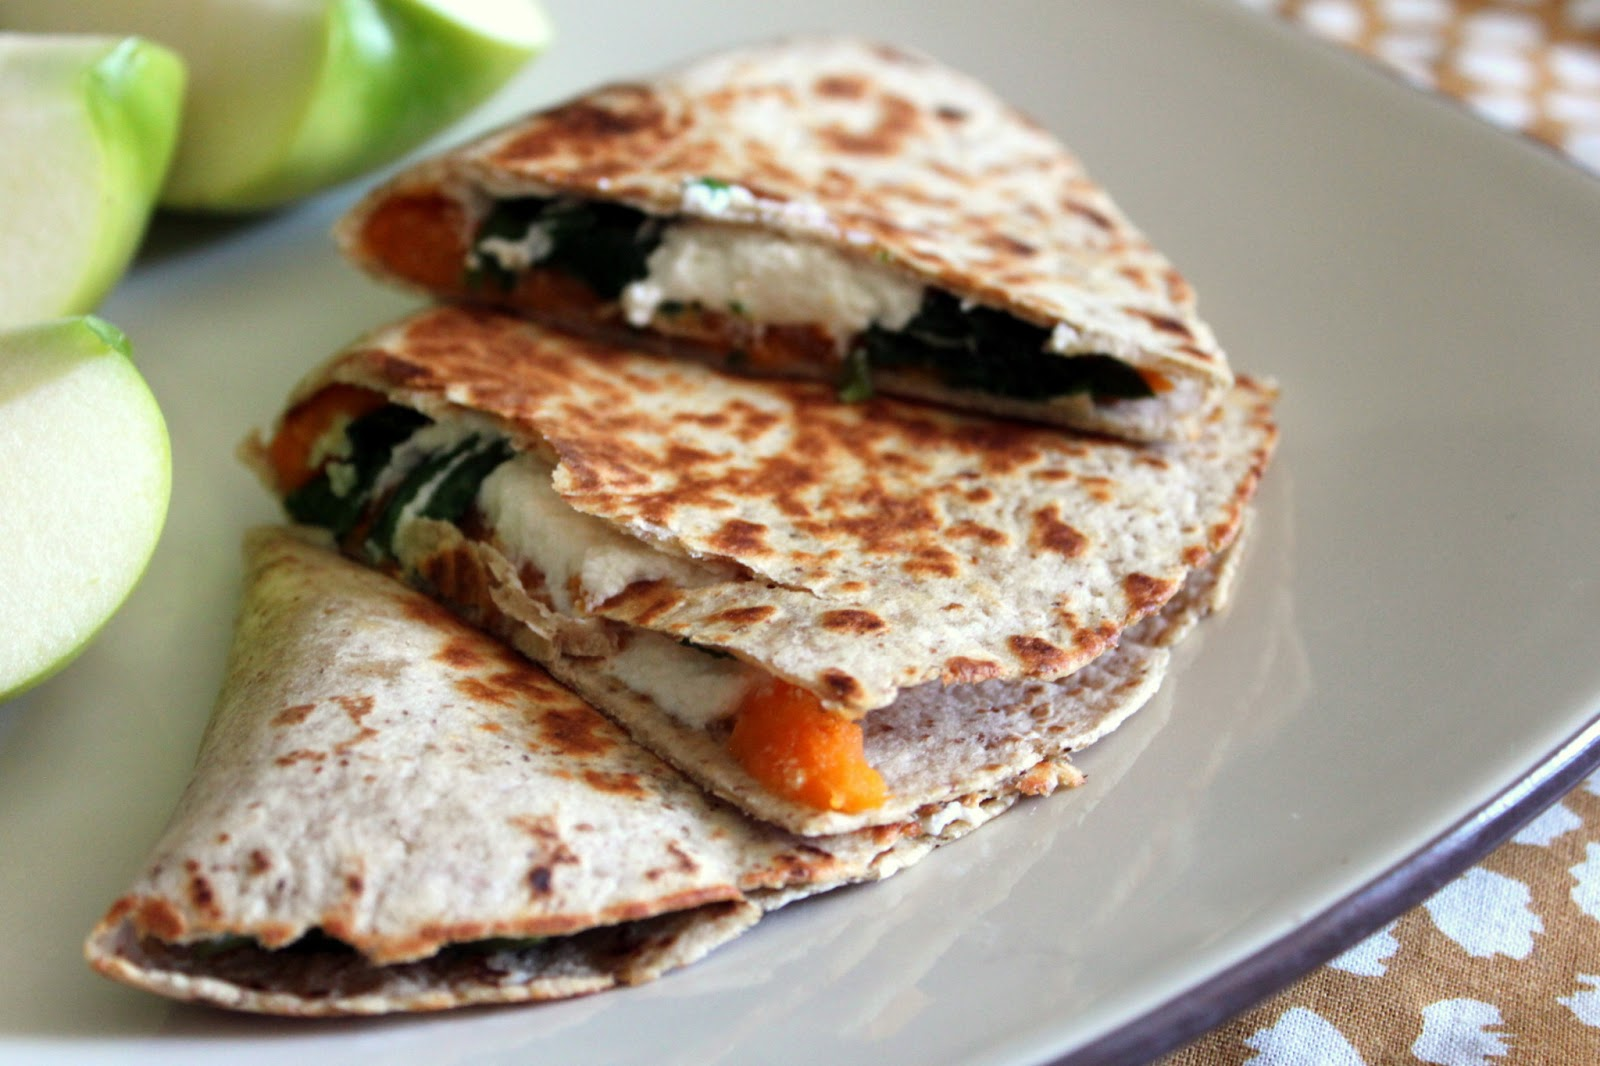 ... Jessica Eat?: Sweet Potato, Spinach, Goat Cheese and Garlic Quesadilla